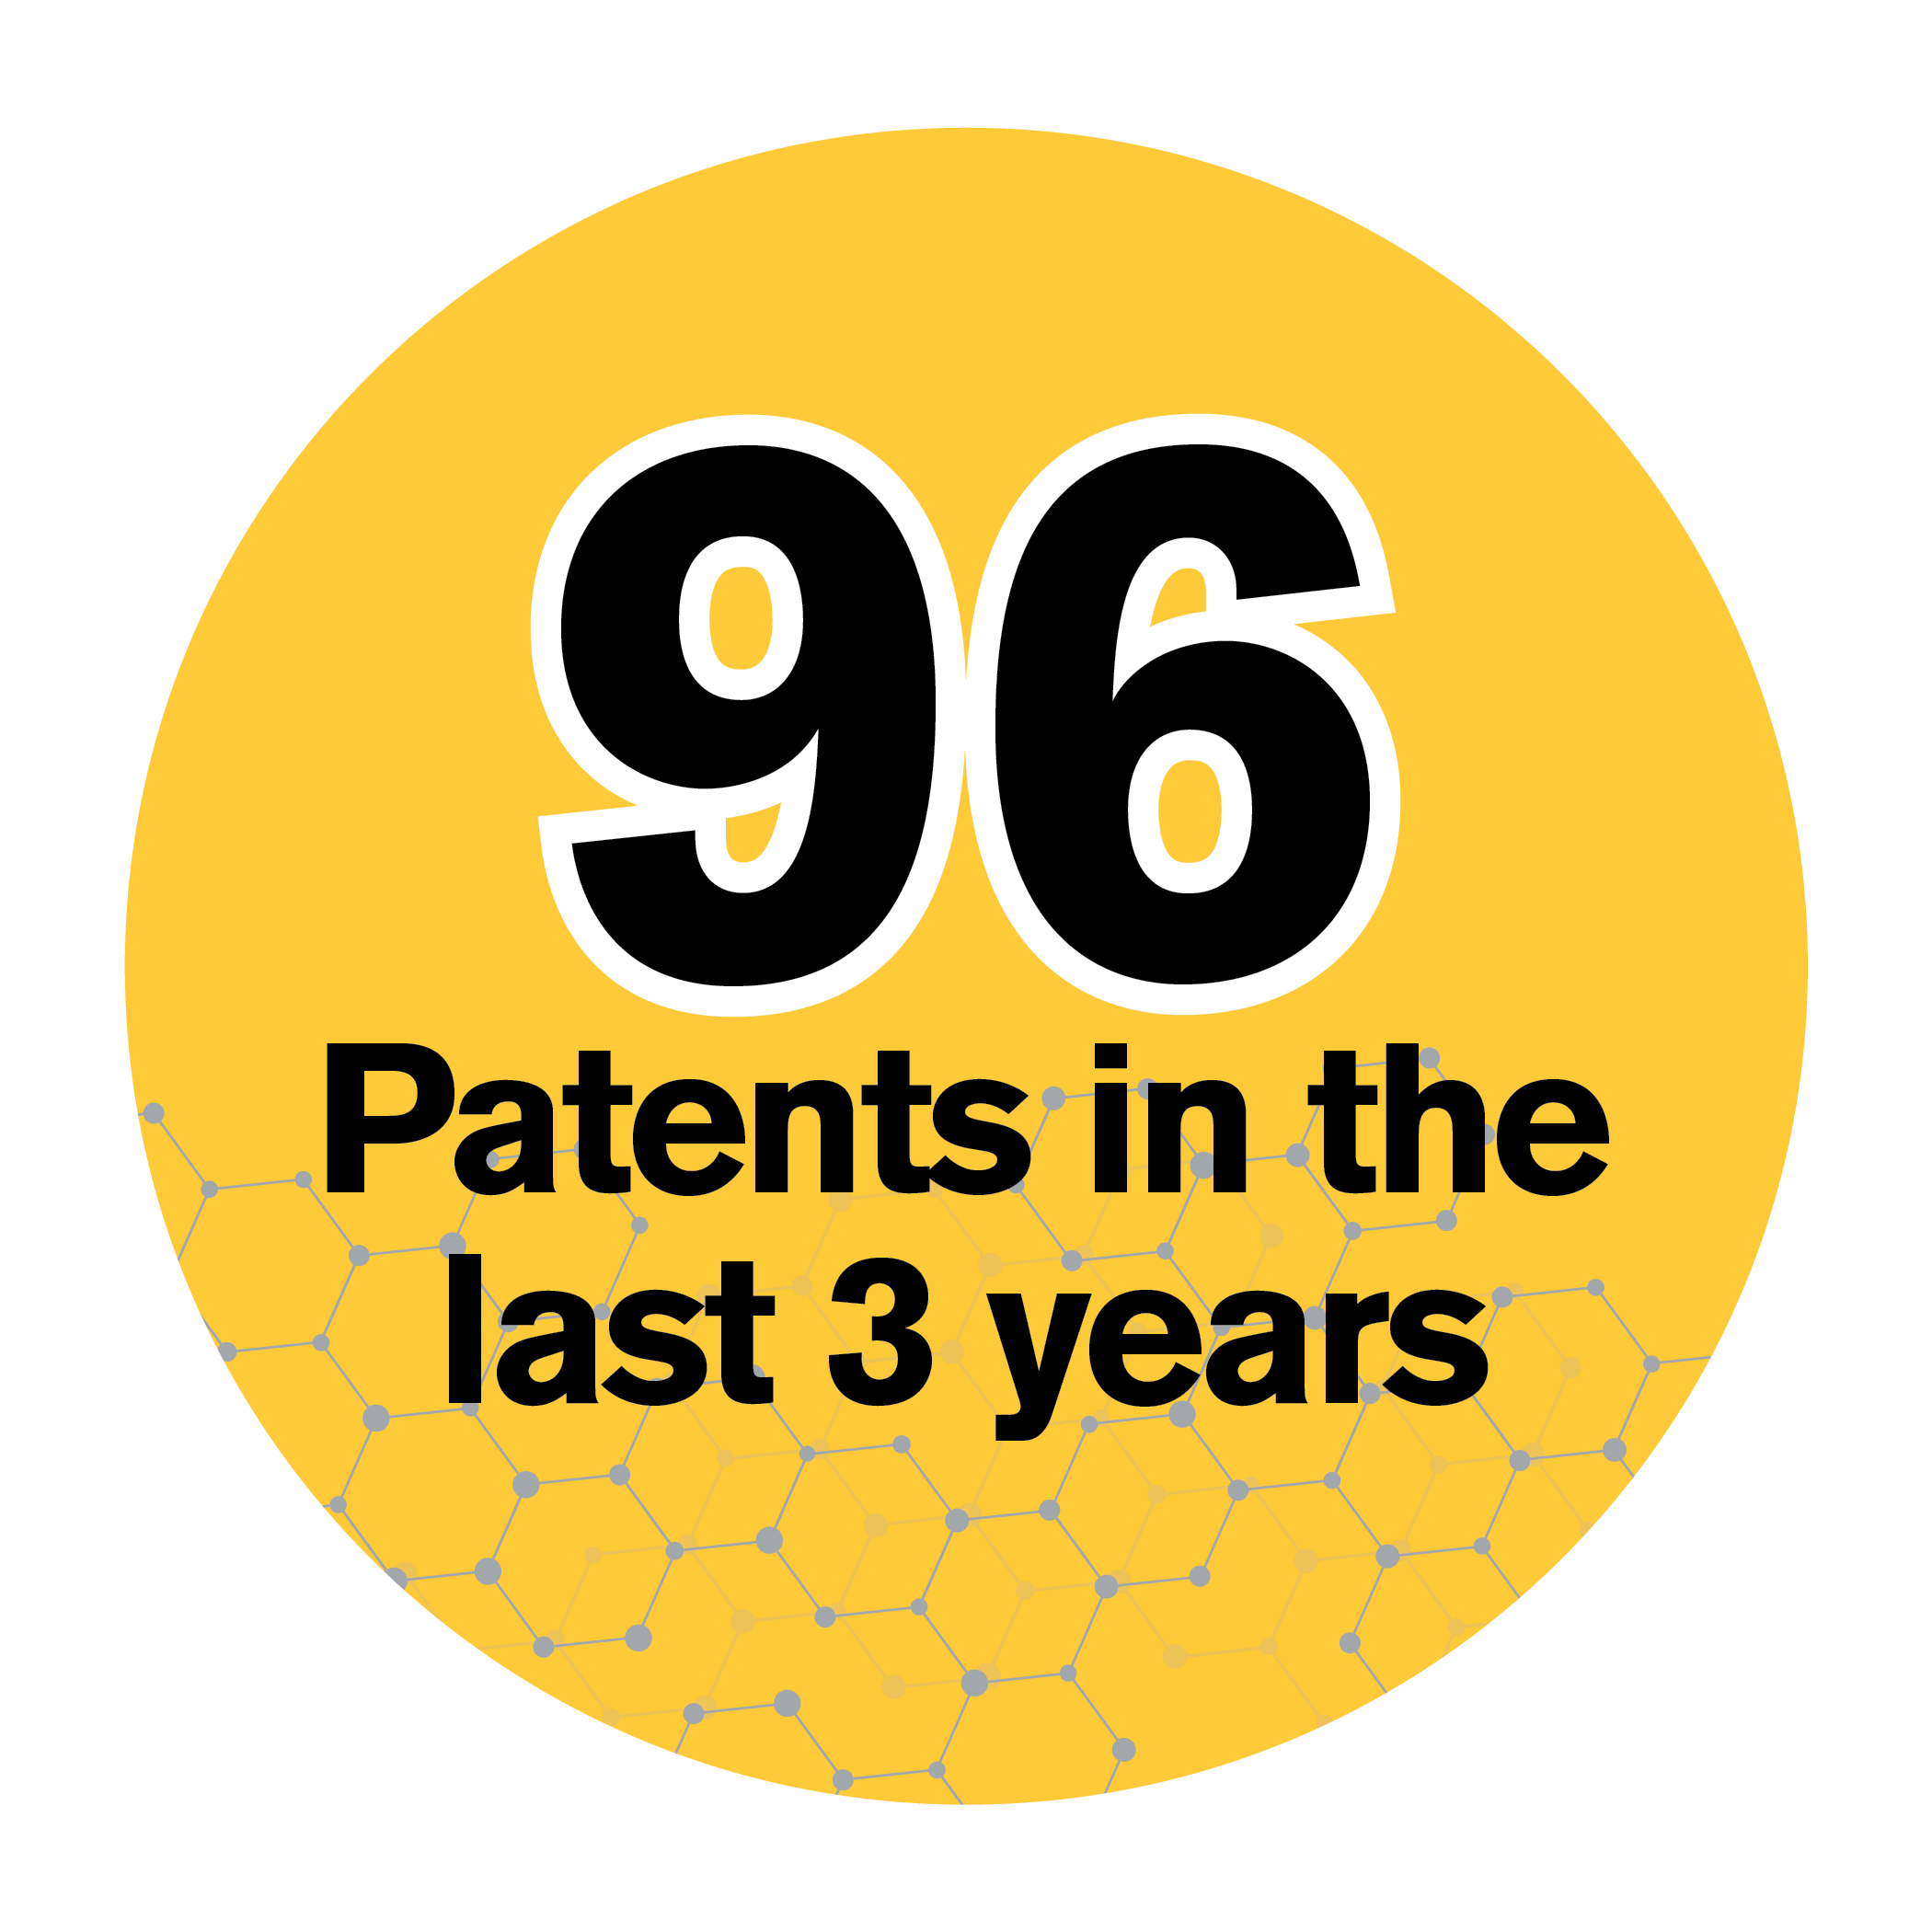 96 Patents in the last 3 years